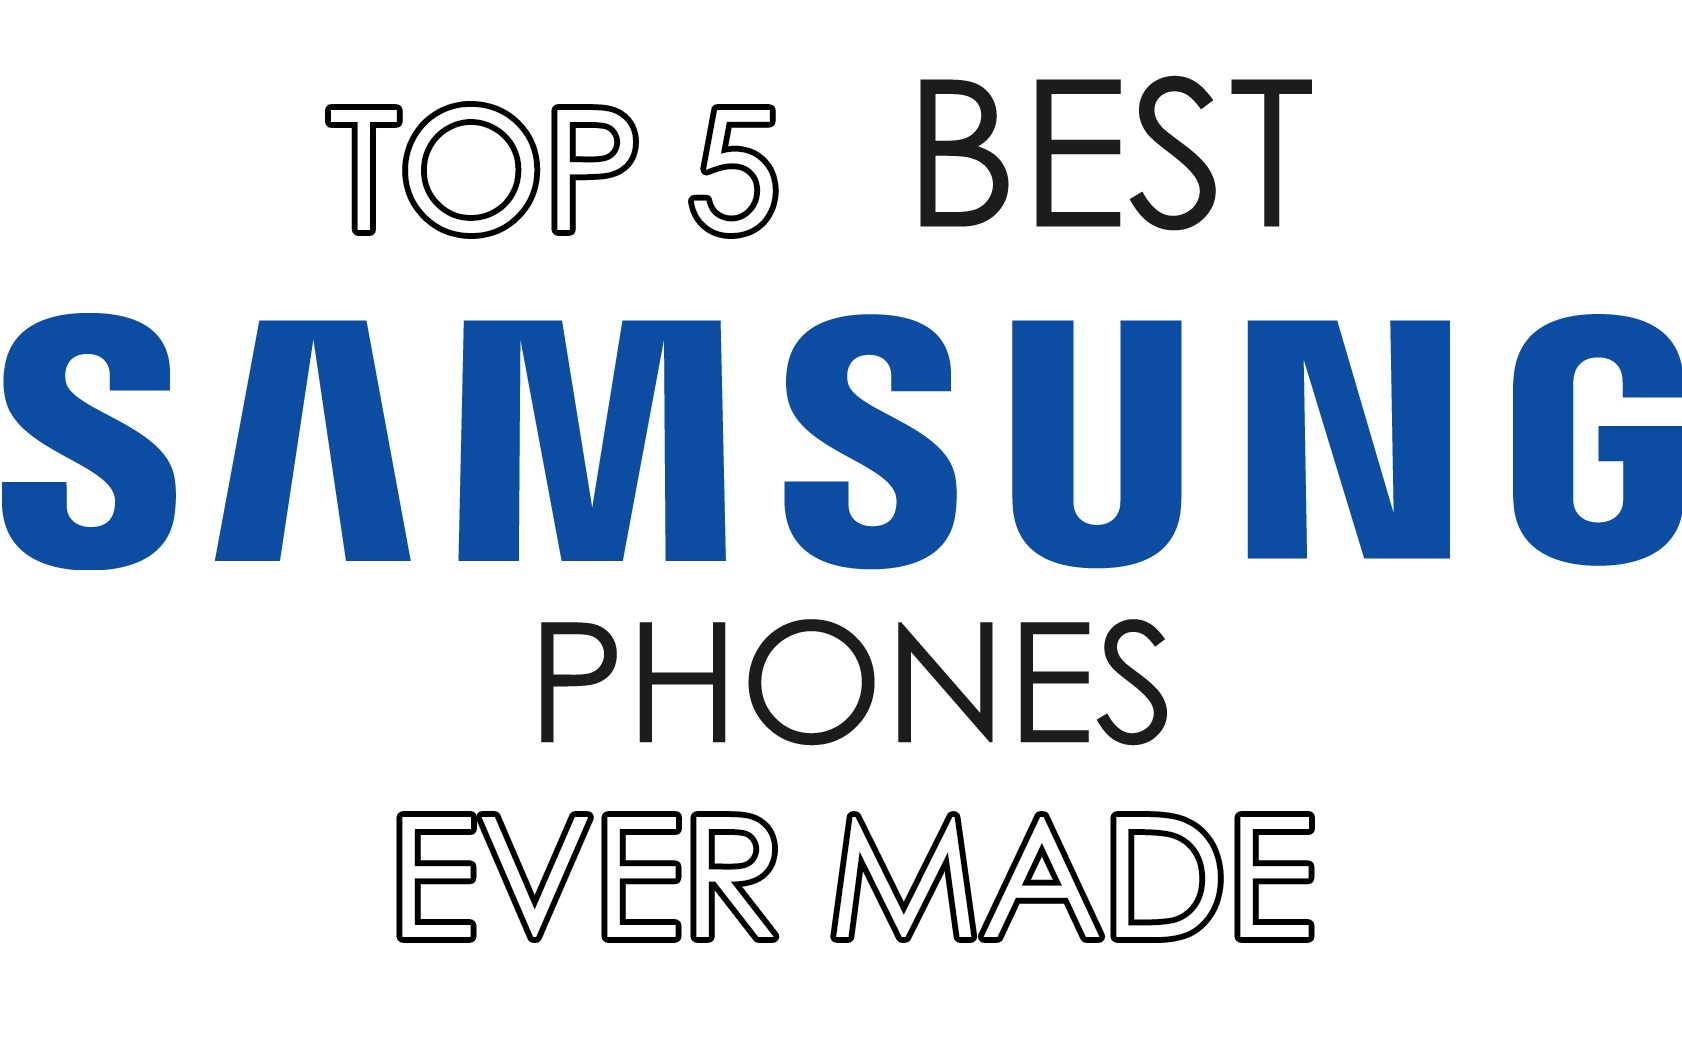 top 5 best samsung phones ever made